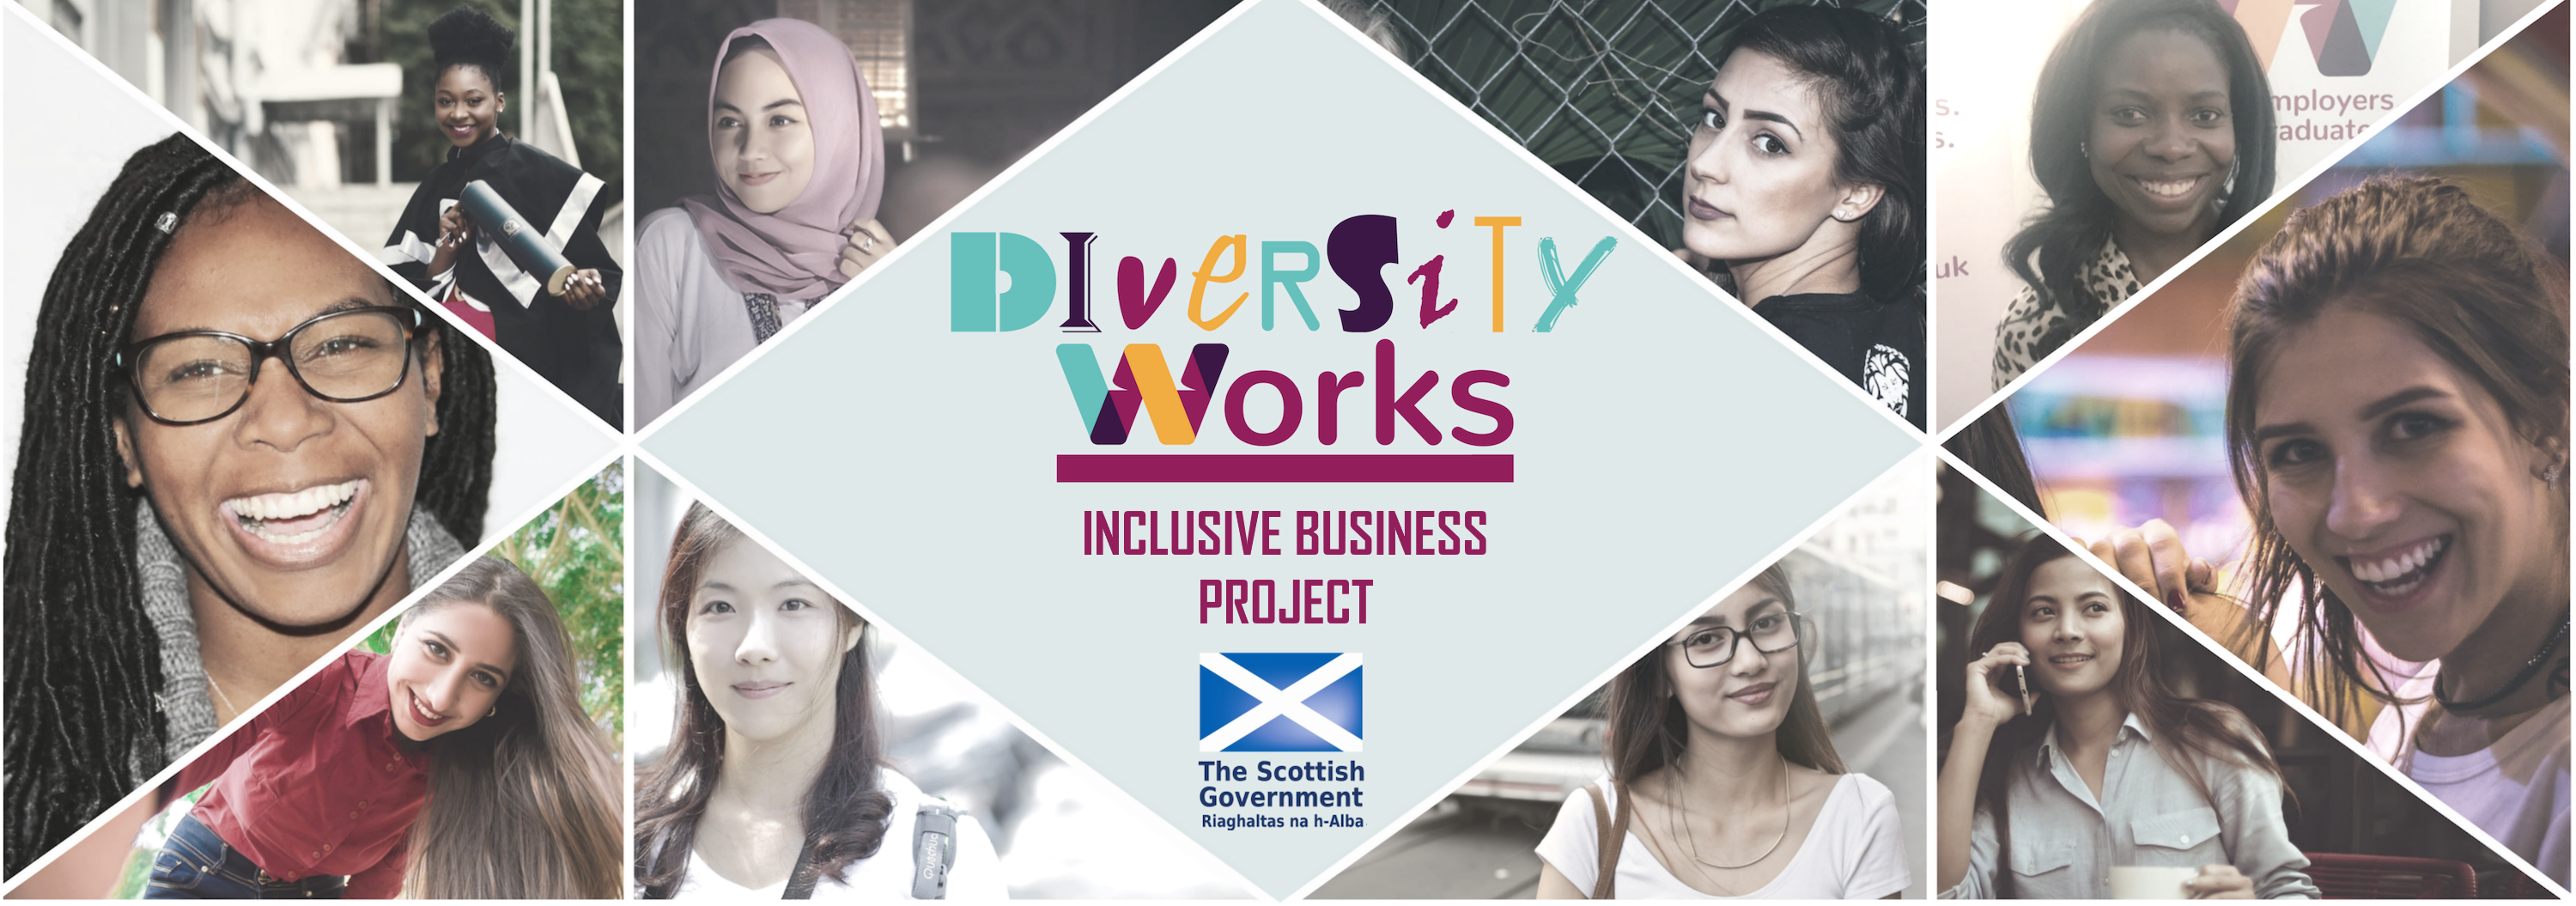 ADOPT.AN.INTERN.DIVERSITY.WORKS.SCOTTISH.GOVERNMENT.MINORITY.ETHNIC.WOMEN.EMPLOYMENT.GRADUATE.RECRUITMENT.JOY.LEWIS.GENERAL.png